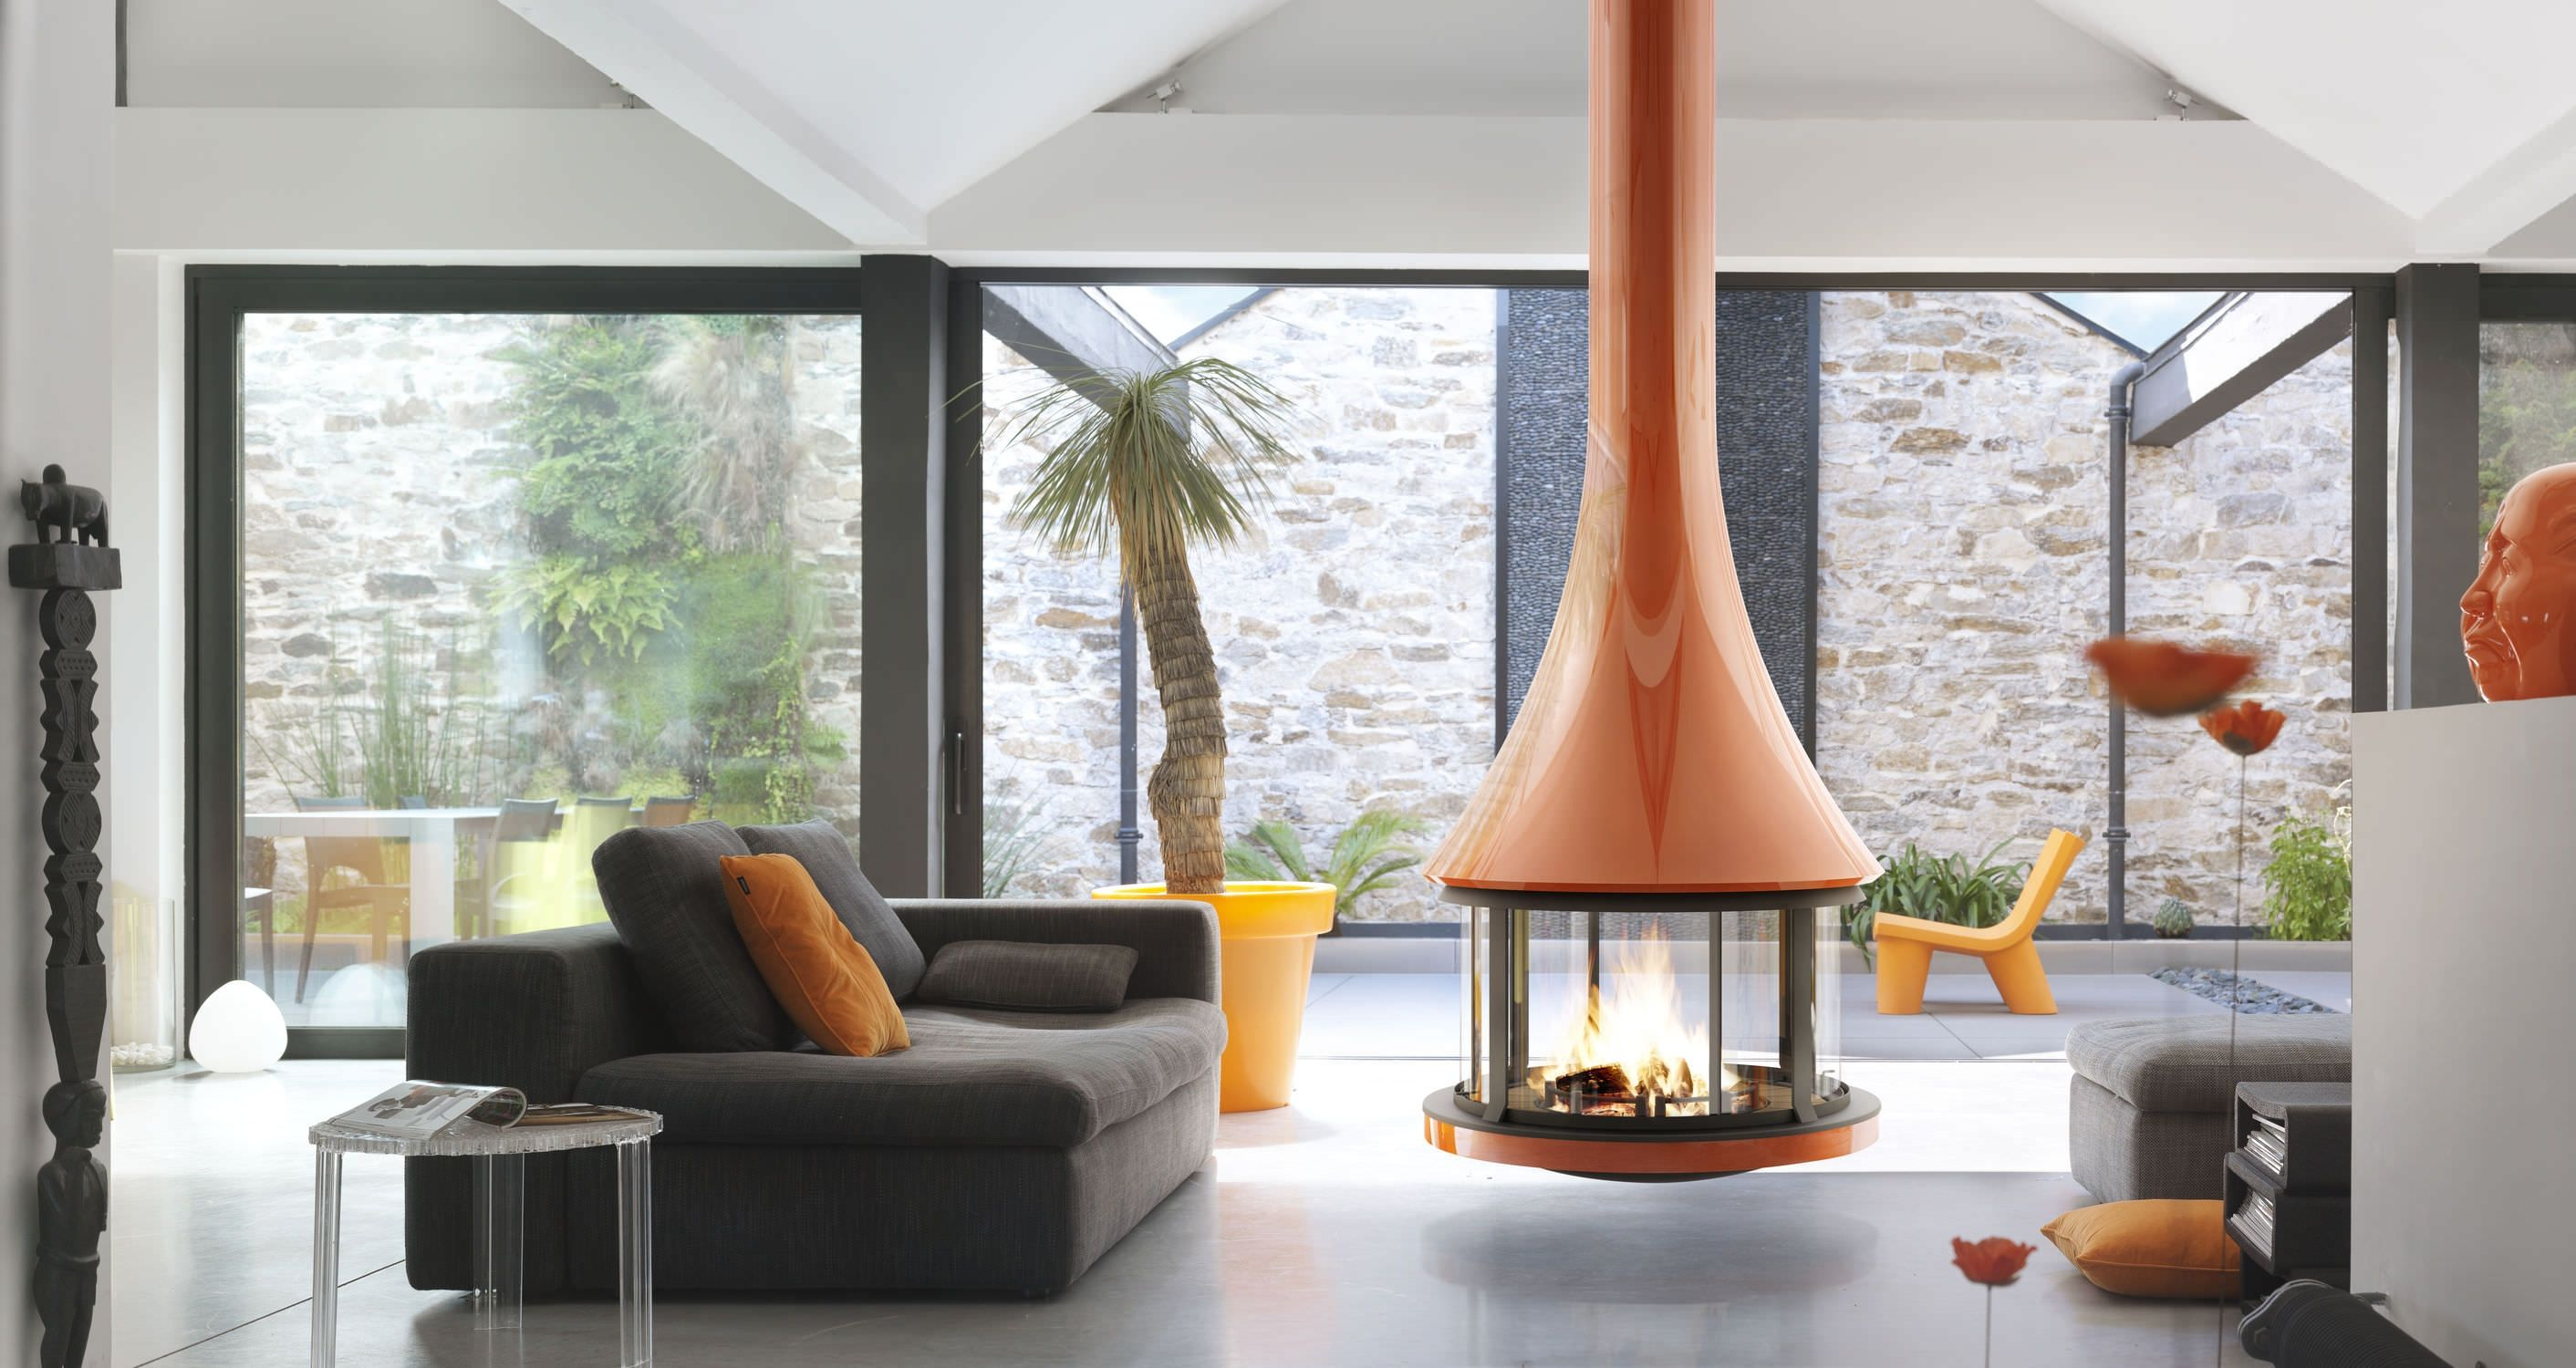 Deluxe Modern Interior Design Electric Fireplaces Indoor Fireplaces Gas Fireplaces Fireplaces Heater Modern Portable Fireplaces Smal In 2019 Hanging Fireplace Contemporary Fireplace Designs Retro Interior Design